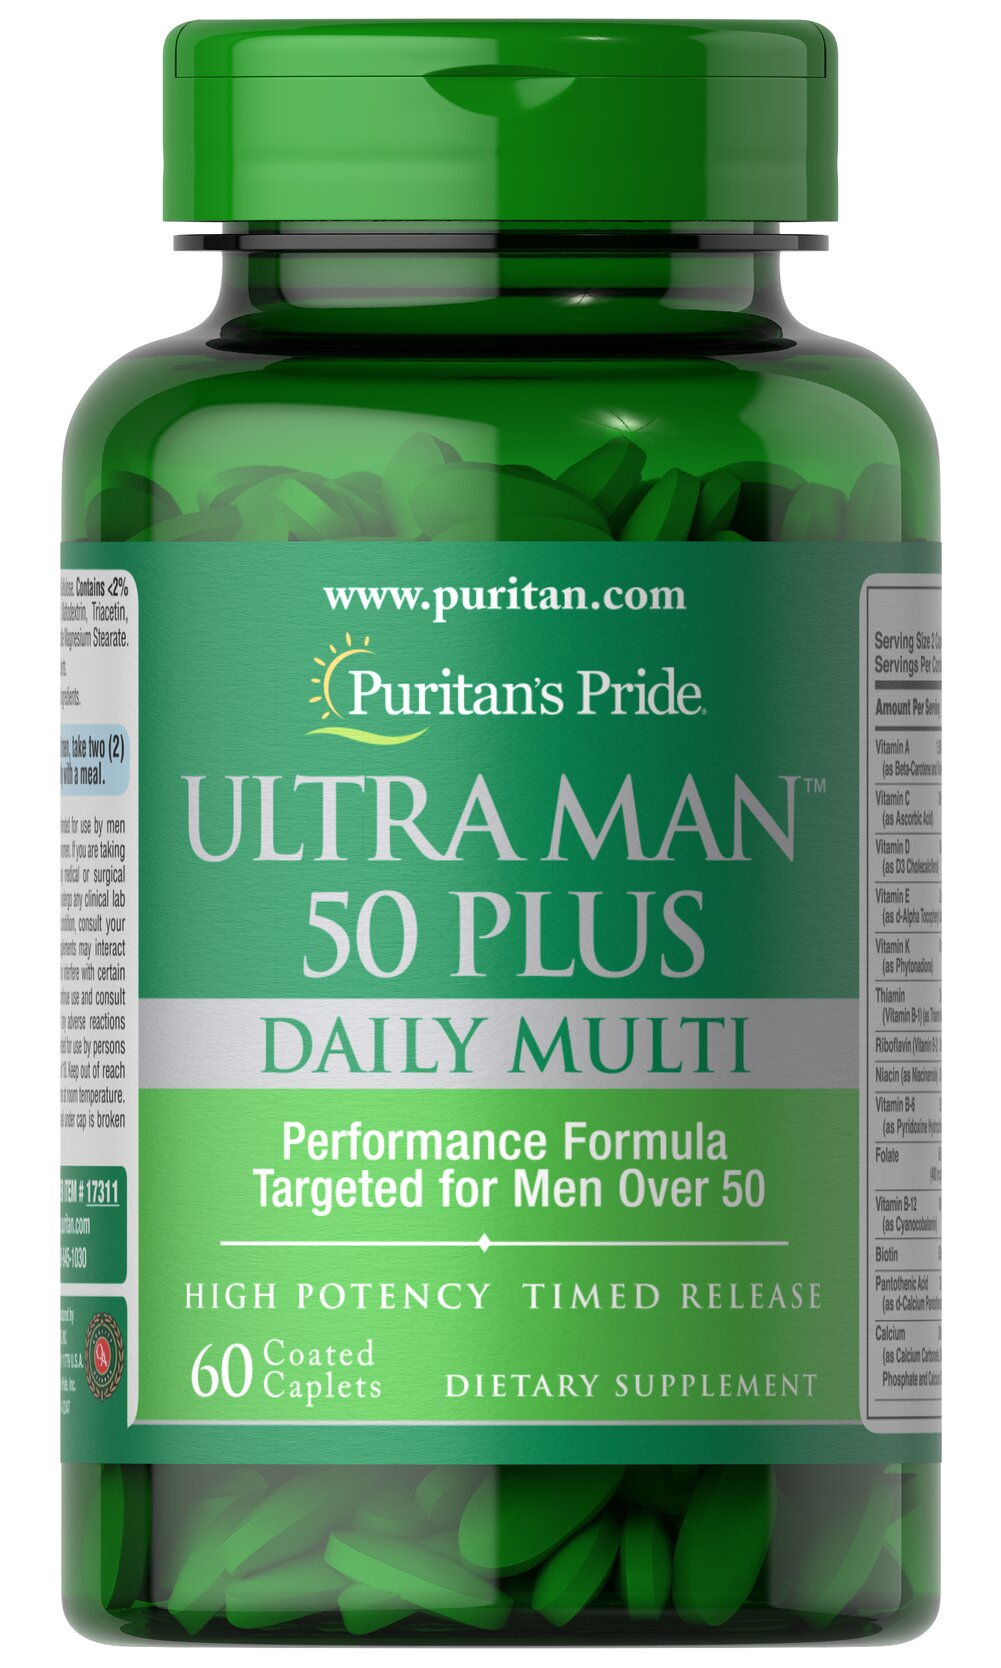 Ultra Vita Man™ 50 Plus • High performance multi with over 50 important nutrients for men's health**<br />• Created especially for men over 50<br />• Unlike other multis, Ultra Vita Man 50 Plus is enhanced with vital nutrients not commonly found in the diet.<br />• Just two coated caplets a day<br />• Features Zinc, an important mineral that contributes to normal semen production and sexual health** 60 Caplets  $11.39